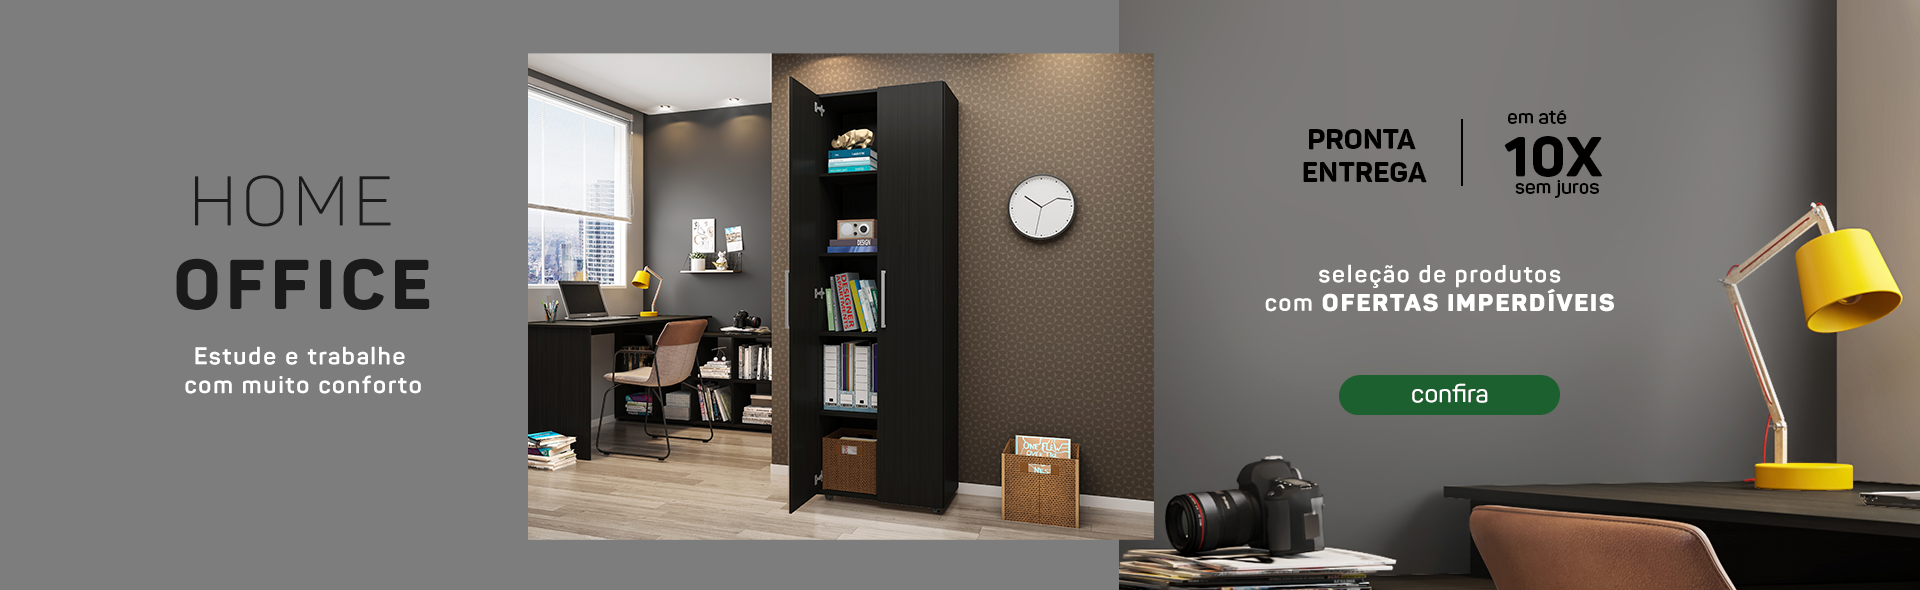 03 Home Office